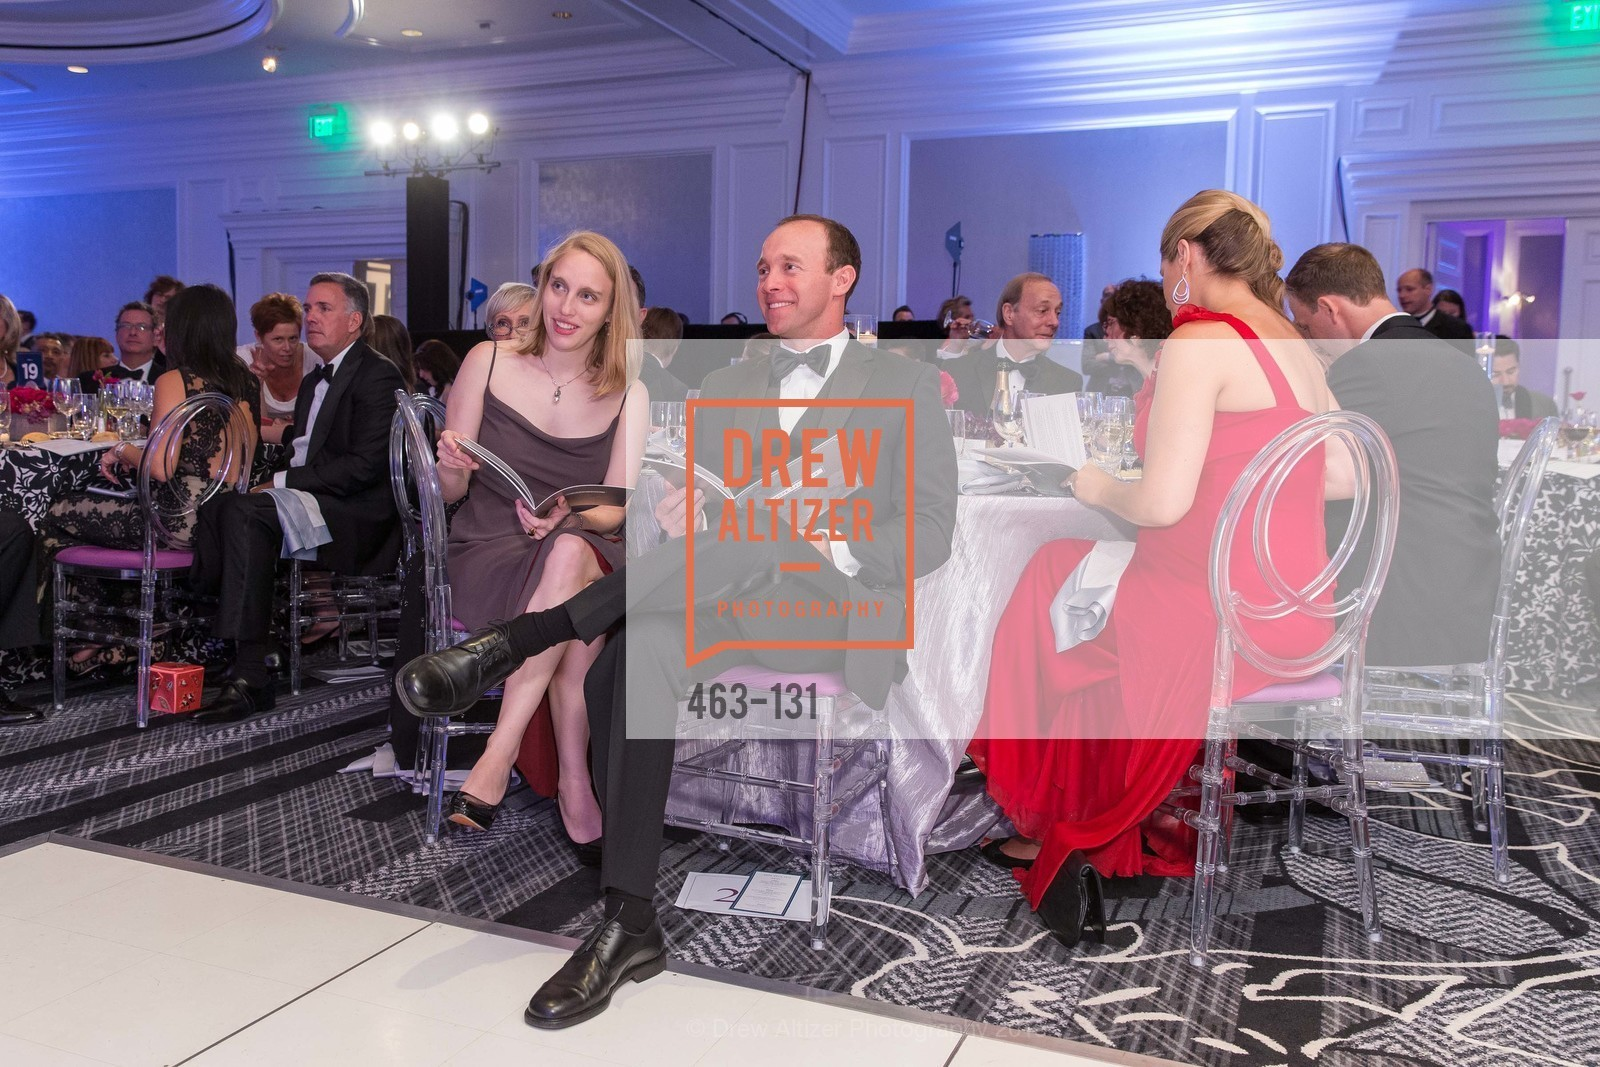 Piper Sagan, Trevor Sagan, JUVENILE DIABETES RESEARCH FOUNDATION  Hope Gala, The Ritz-Carlton, May 29th, 2015,Drew Altizer, Drew Altizer Photography, full-service event agency, private events, San Francisco photographer, photographer California